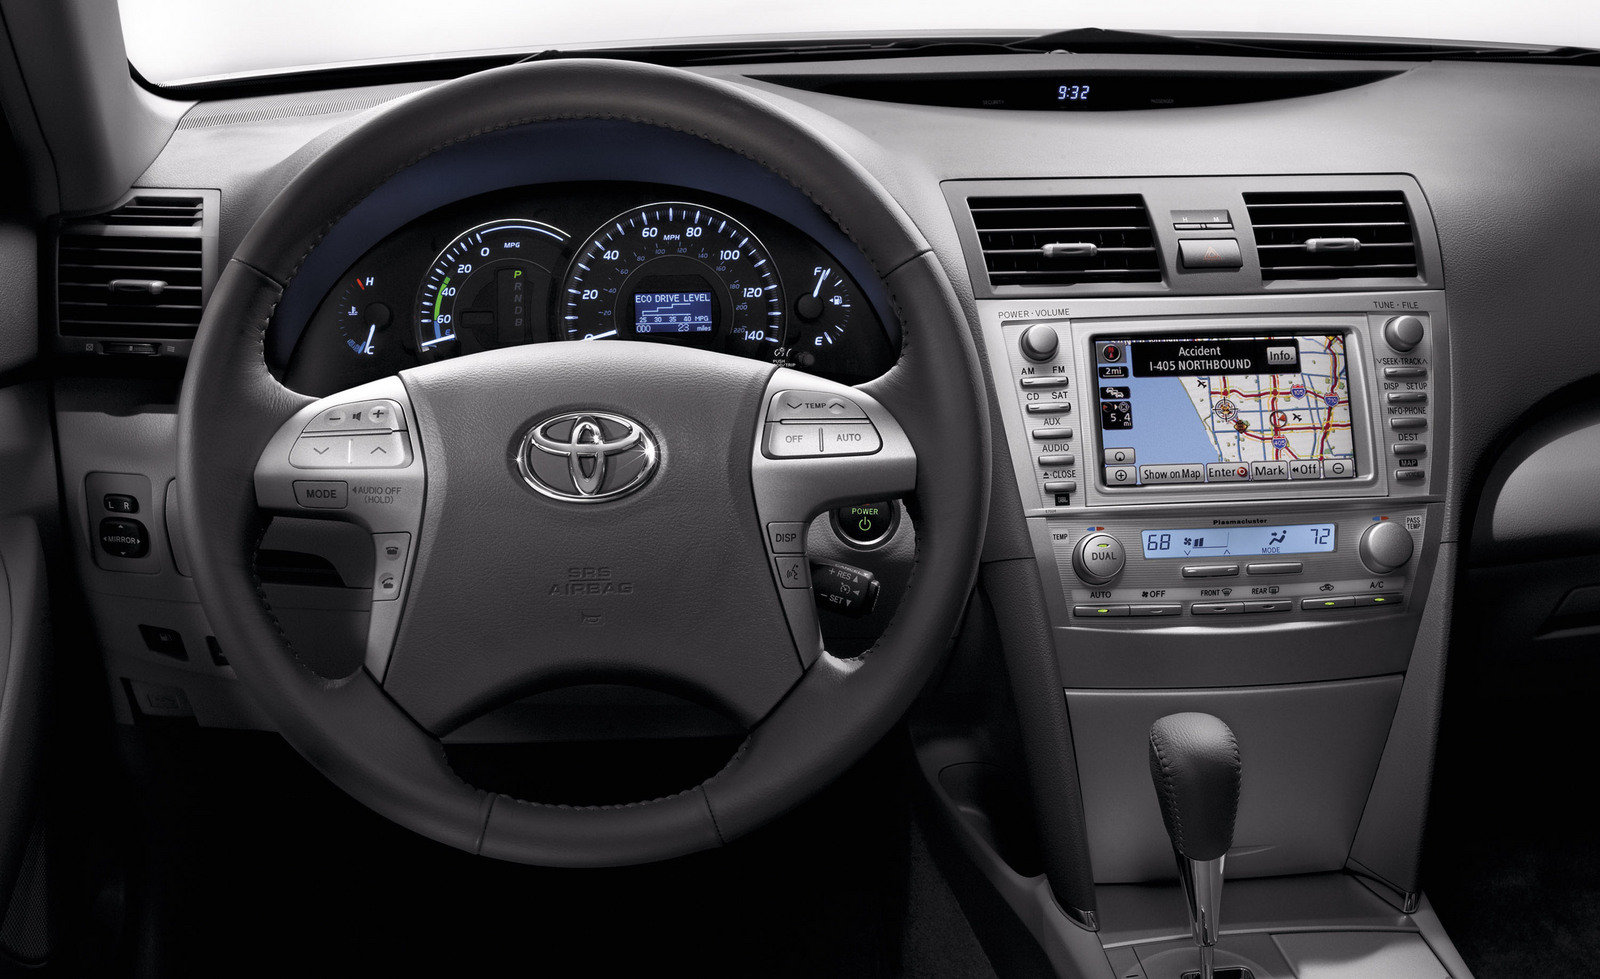 A072umys Toyota Camry 2010 Silver Computer Parts Labeled Interior